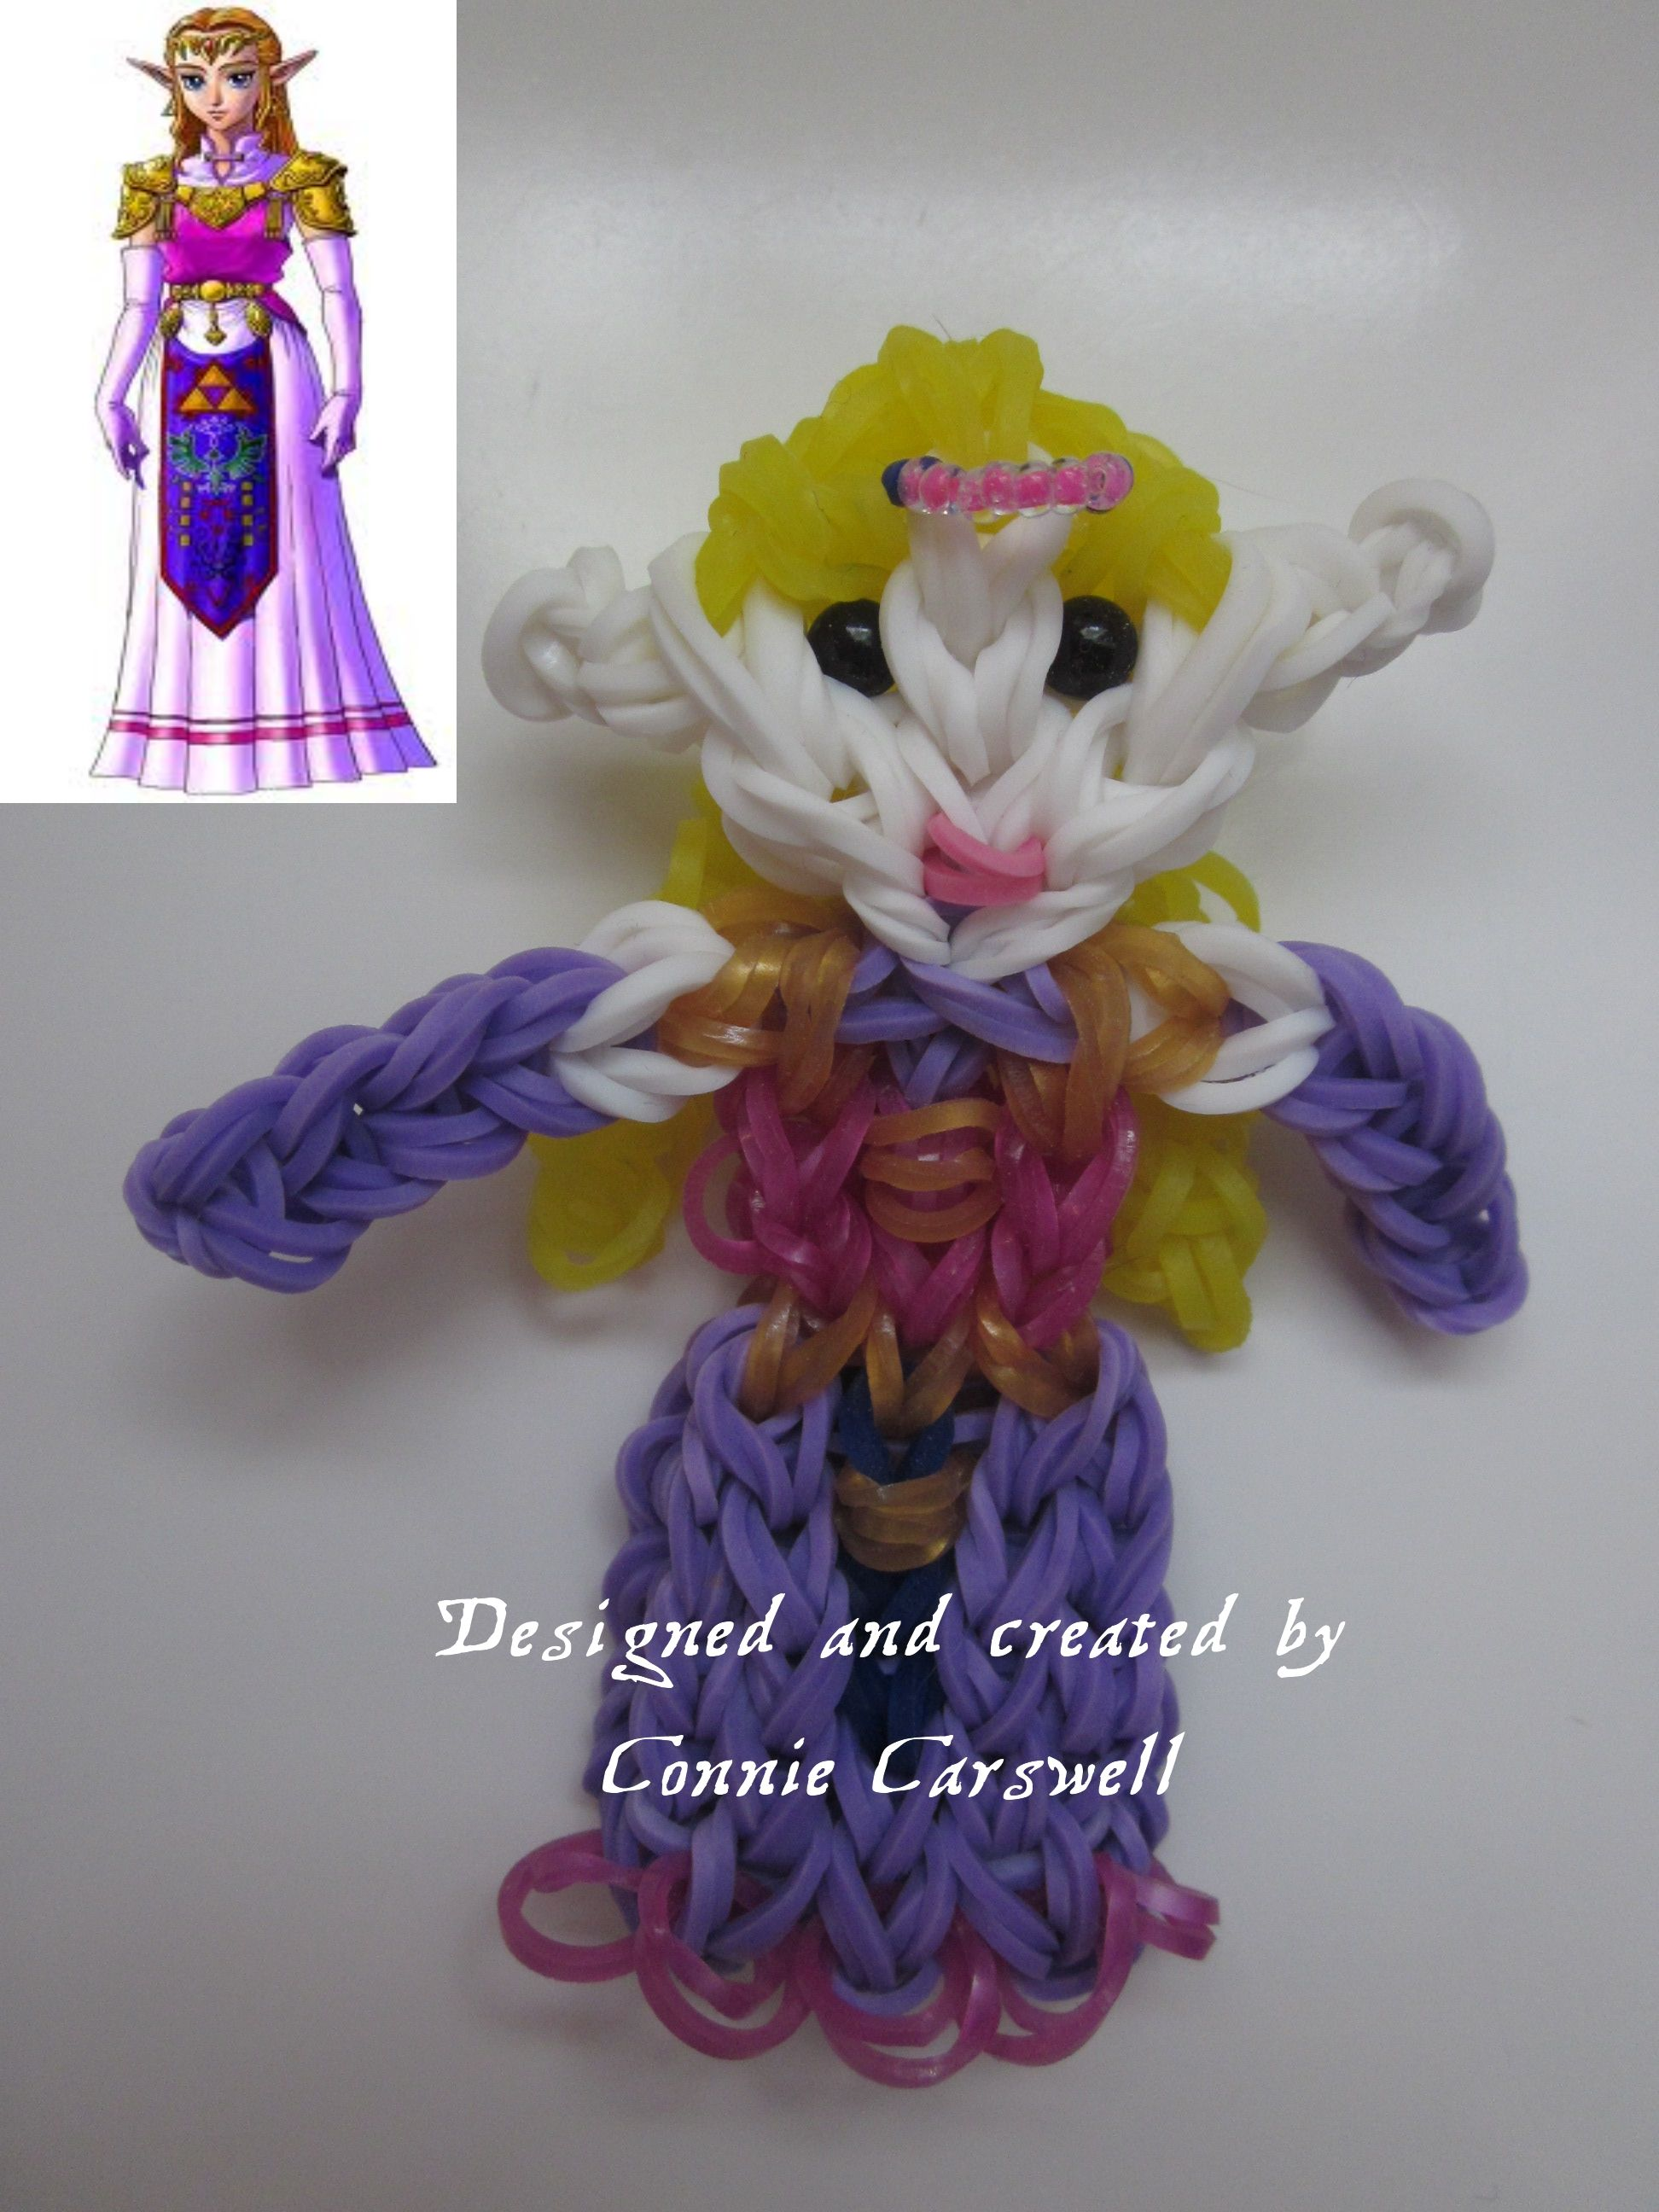 Rainbow Loom Princess Zelda Charm Fyi The Bands At The